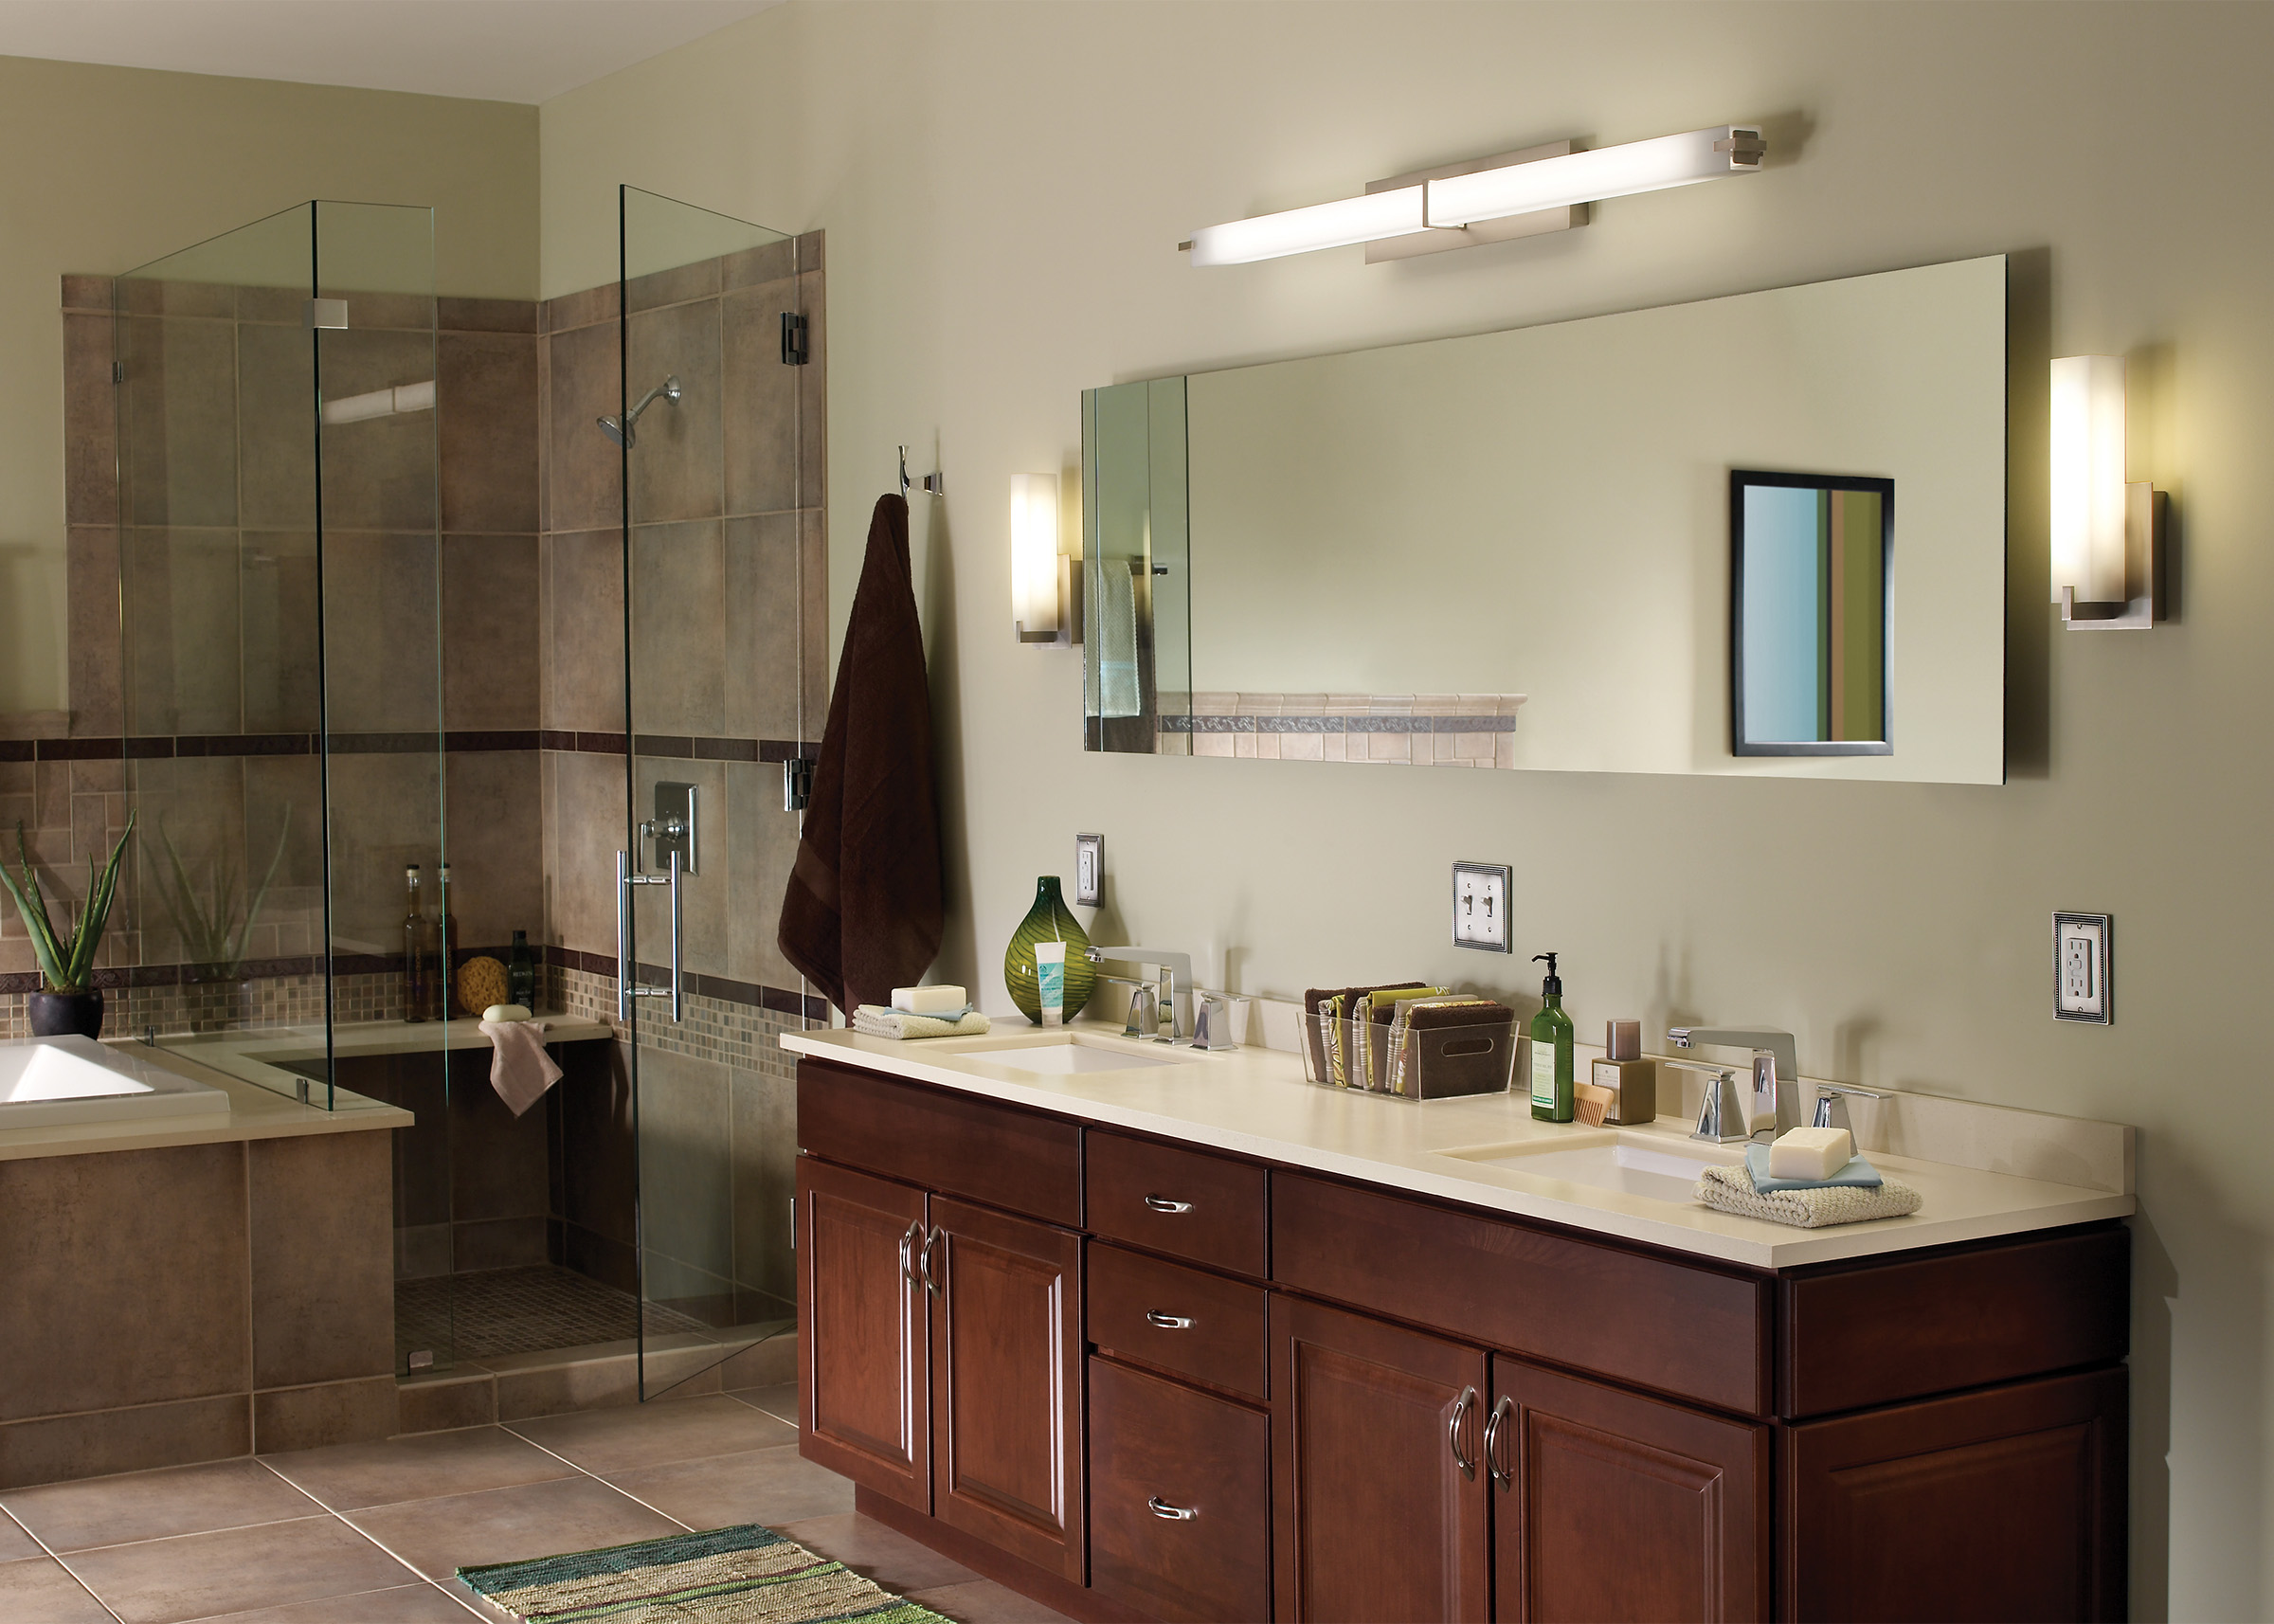 Bathroom Vanity Lighting Guidelines do i need damp rated lights for my bathroom? - flip the switch